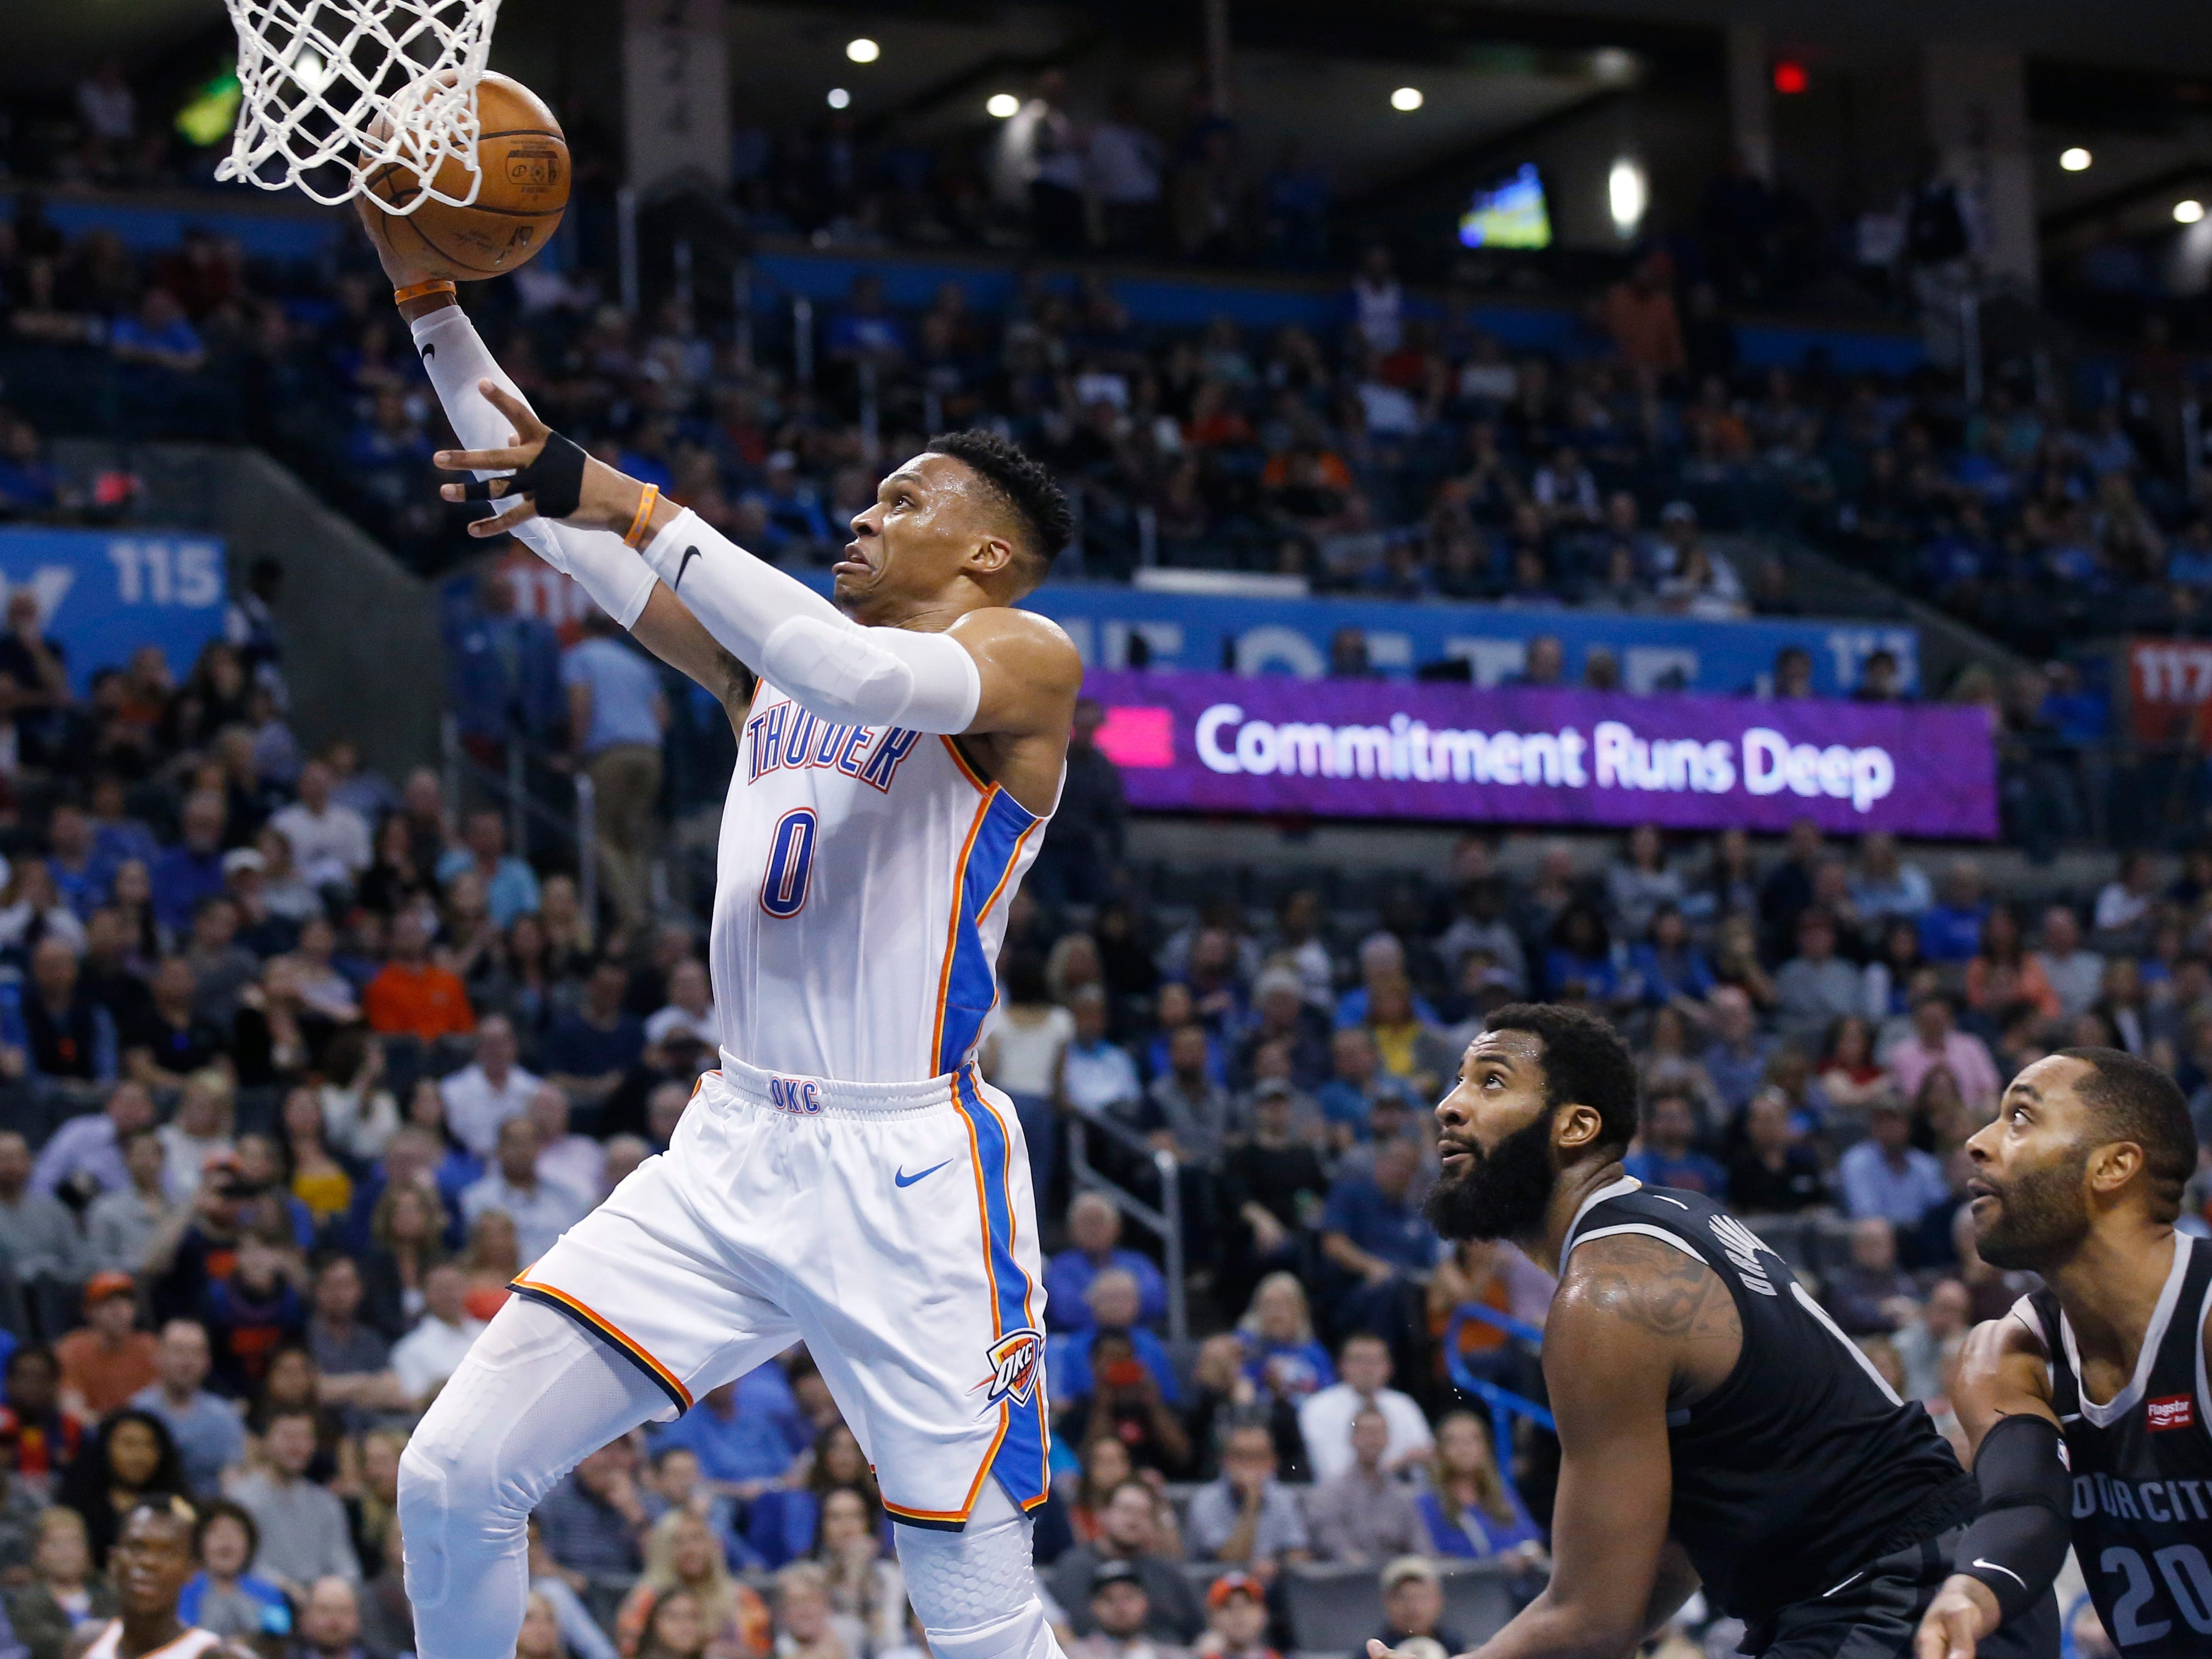 Oklahoma City Thunder guard Russell Westbrook (0) goes to the basket in front of Detroit Pistons center Andre Drummond, center, and guard Wayne Ellington (20) during the second half.